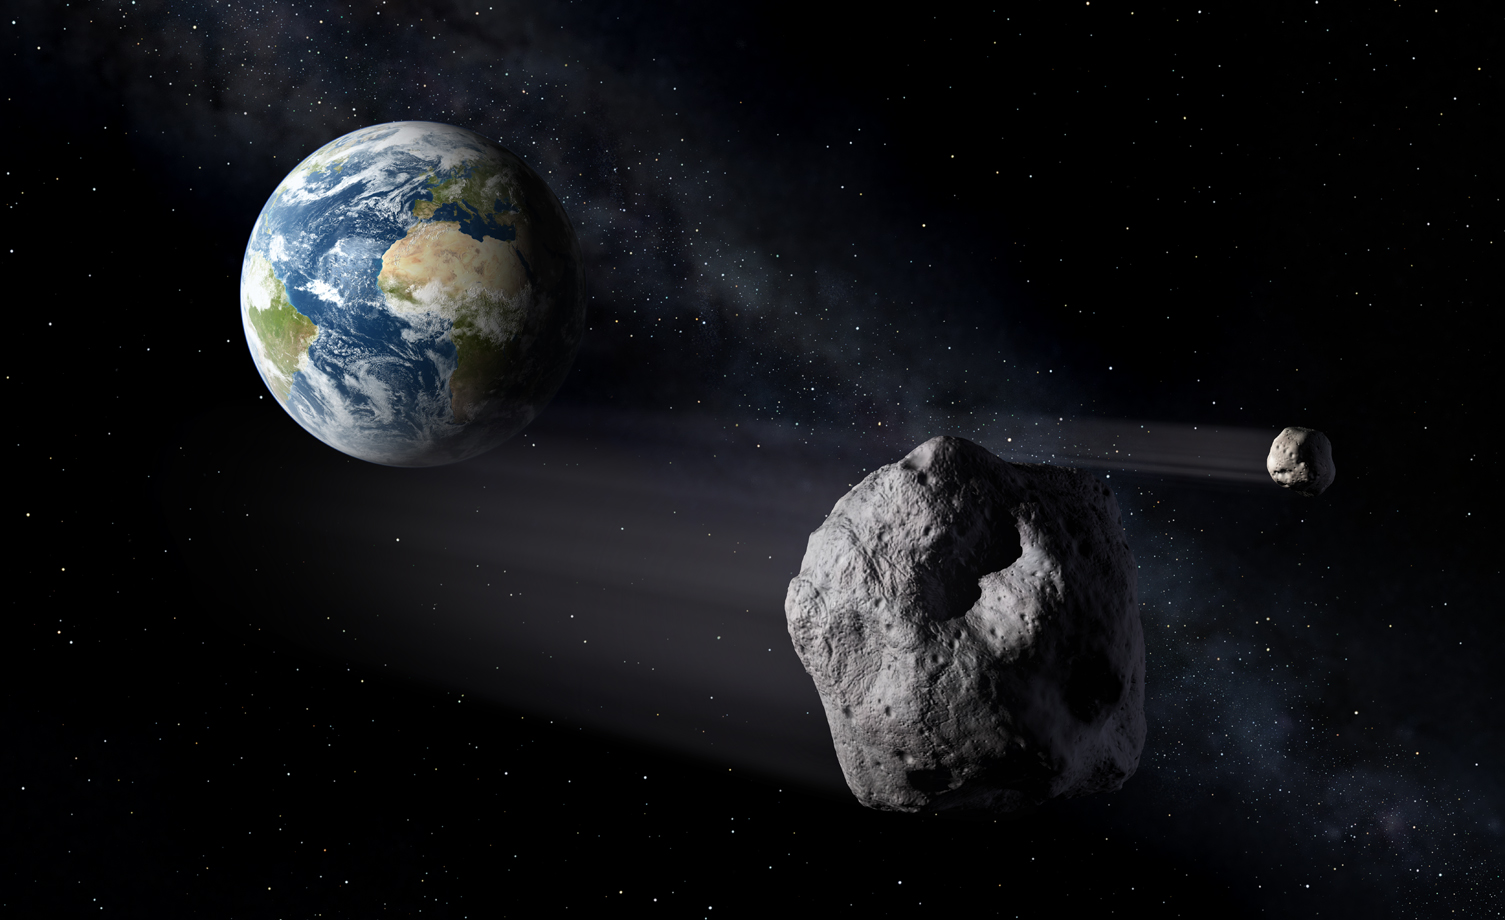 Four Asteroids Are Buzzing Earth in Flybys Today (But Don't Worry) | Space